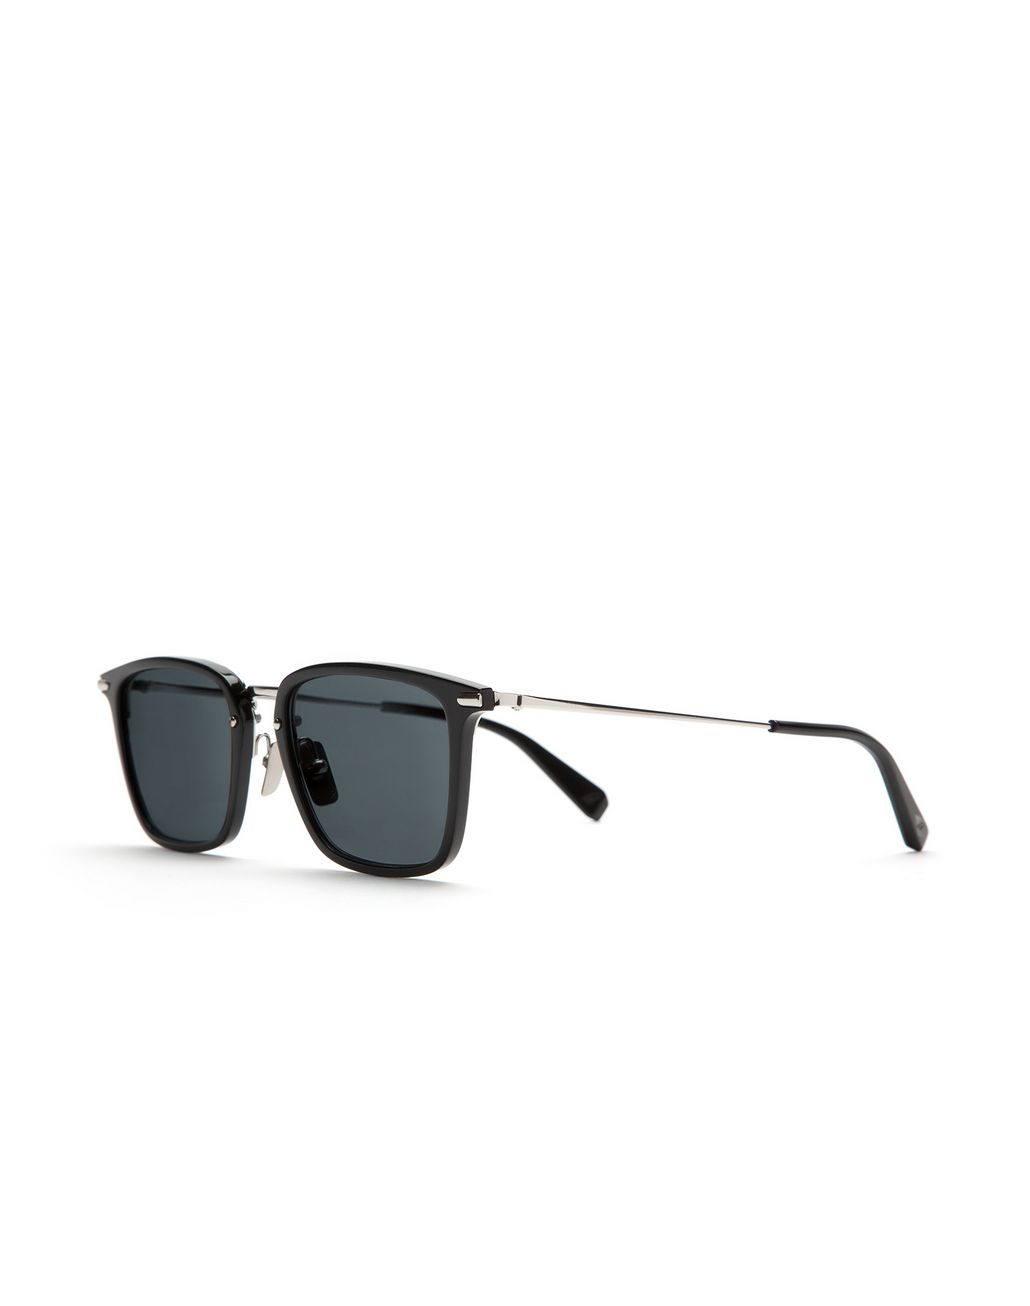 BRIONI Shiny Black Squared Sunglasses with Grey Lenses  Sunglasses [*** pickupInStoreShippingNotGuaranteed_info ***] r